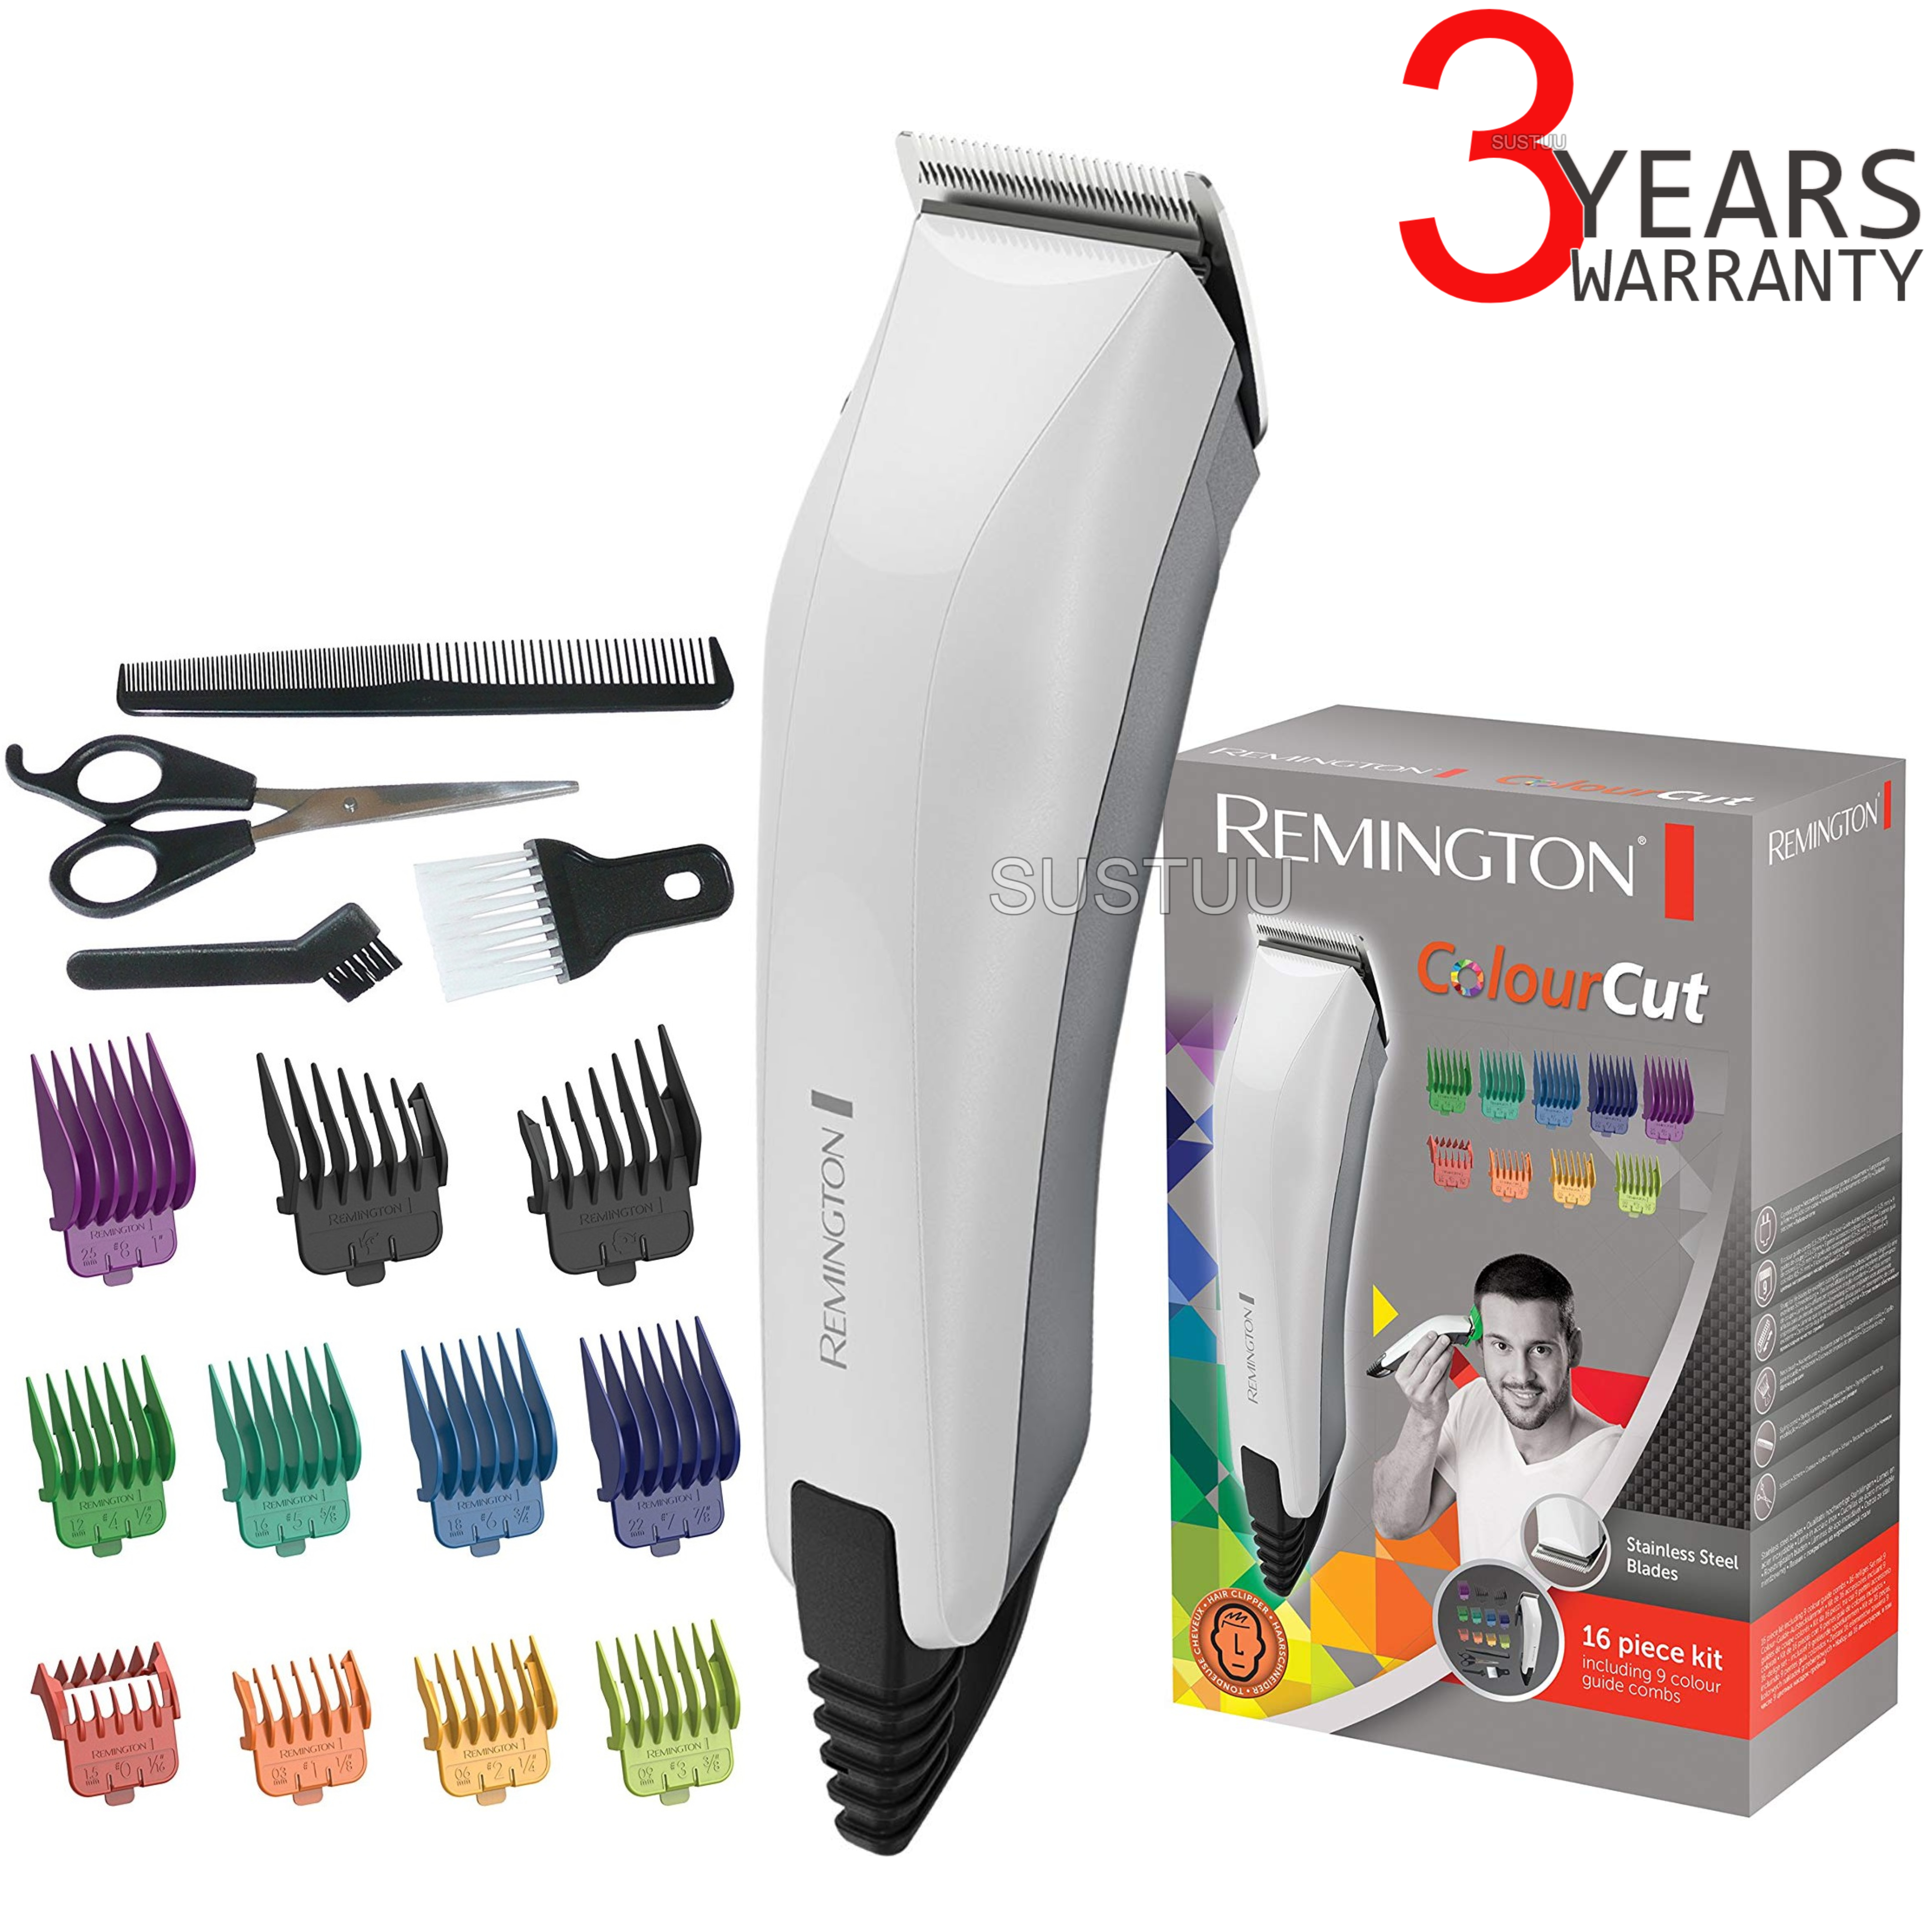 Remington HC5035 16pc Colour Cut Corded Hair Grooming Kit   Clipper & Shaver   NEW